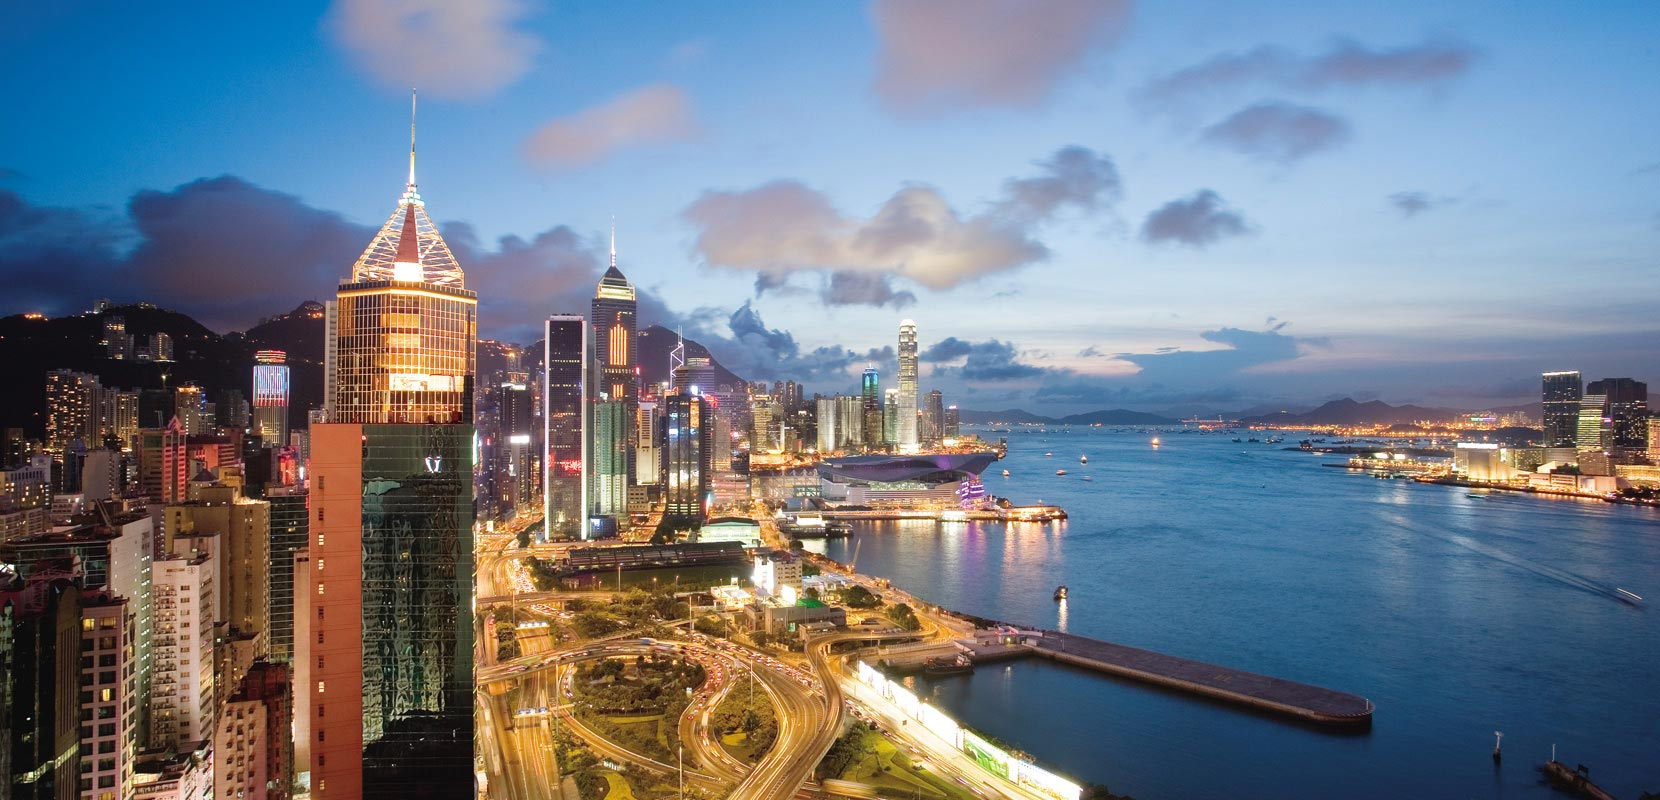 The Excelsior Hong Kong By If Only